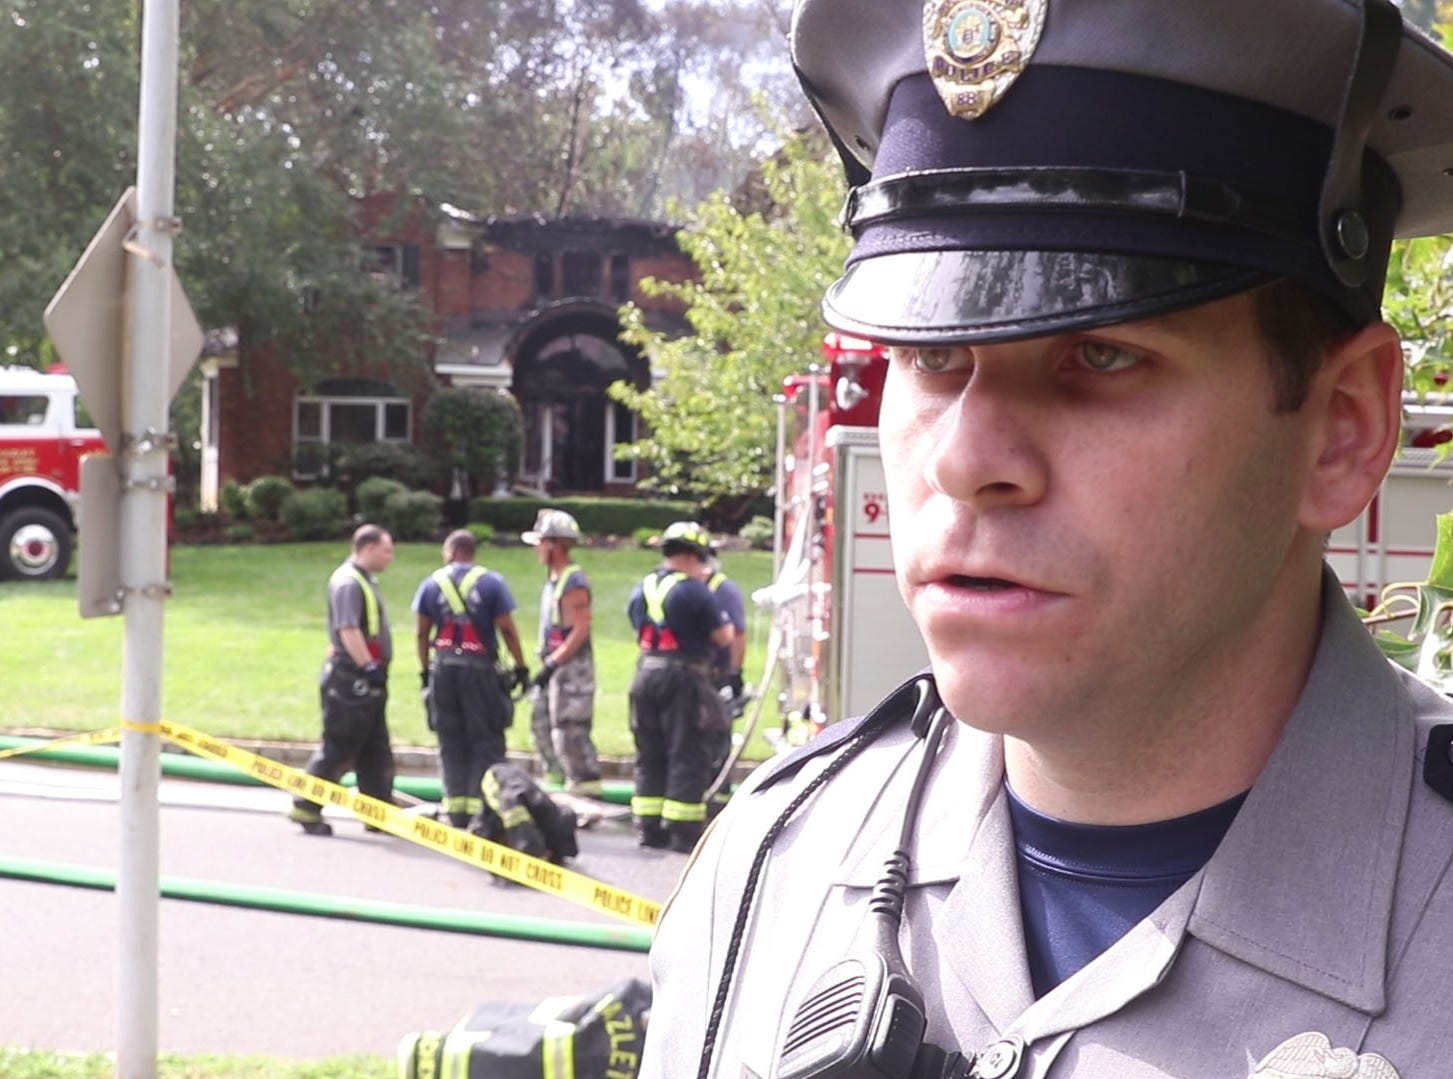 A home located at 6 Barrister Drive in Holmdel suffered severe damage after a fire broke out early morning on the back deck and quickly engulfed the structure. Holmdel police officer James Corrigan explains what happened. Holmdel, NJSaturday, September 1, 2018